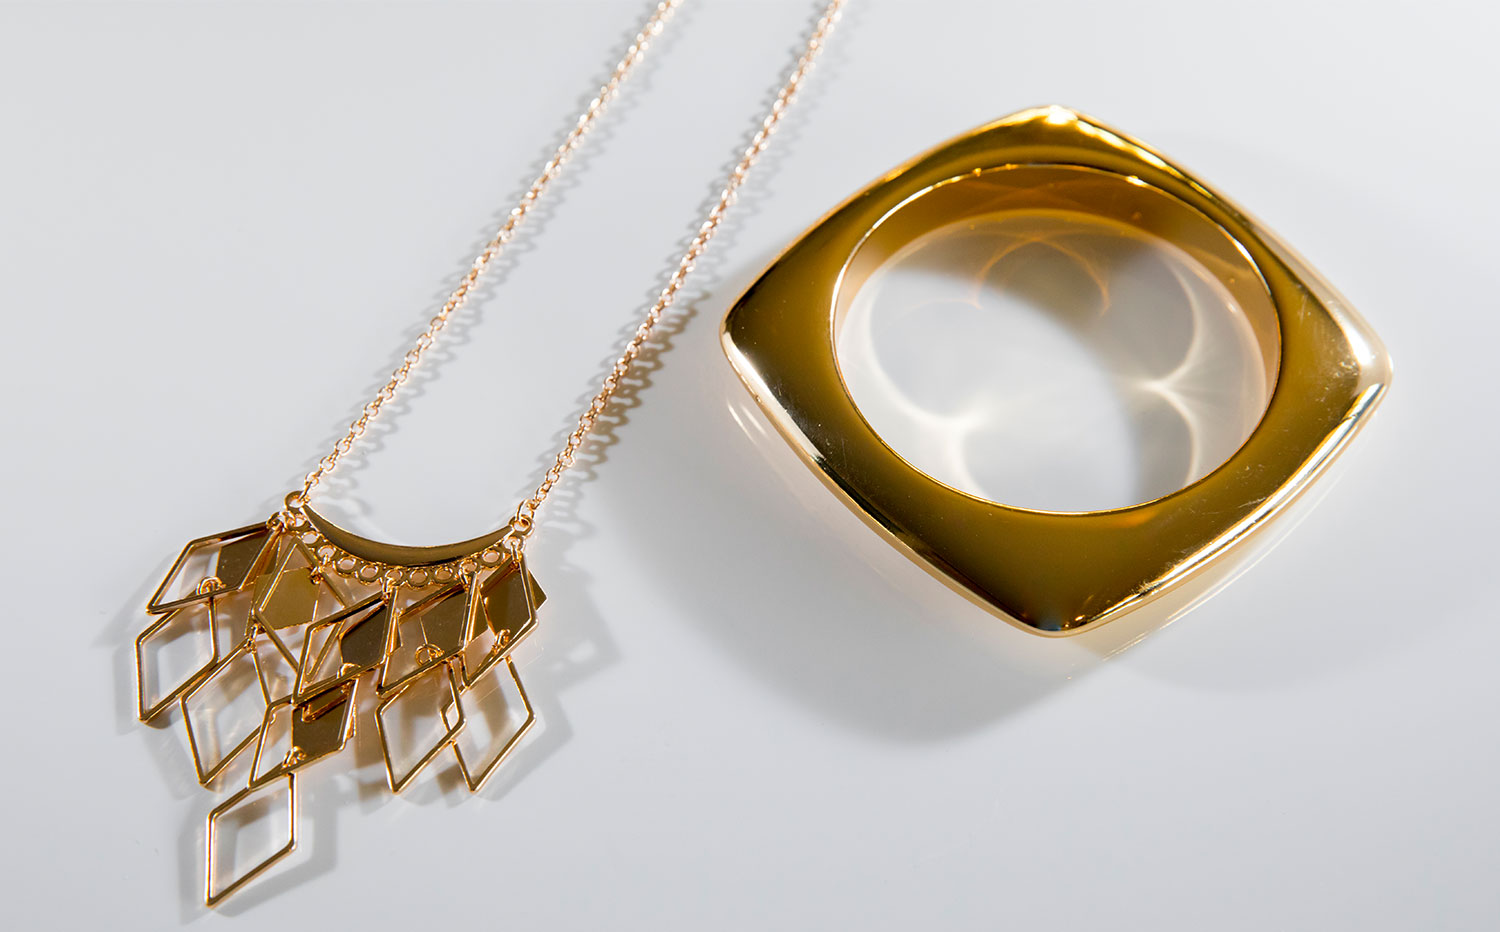 Our new Jewellery Collection